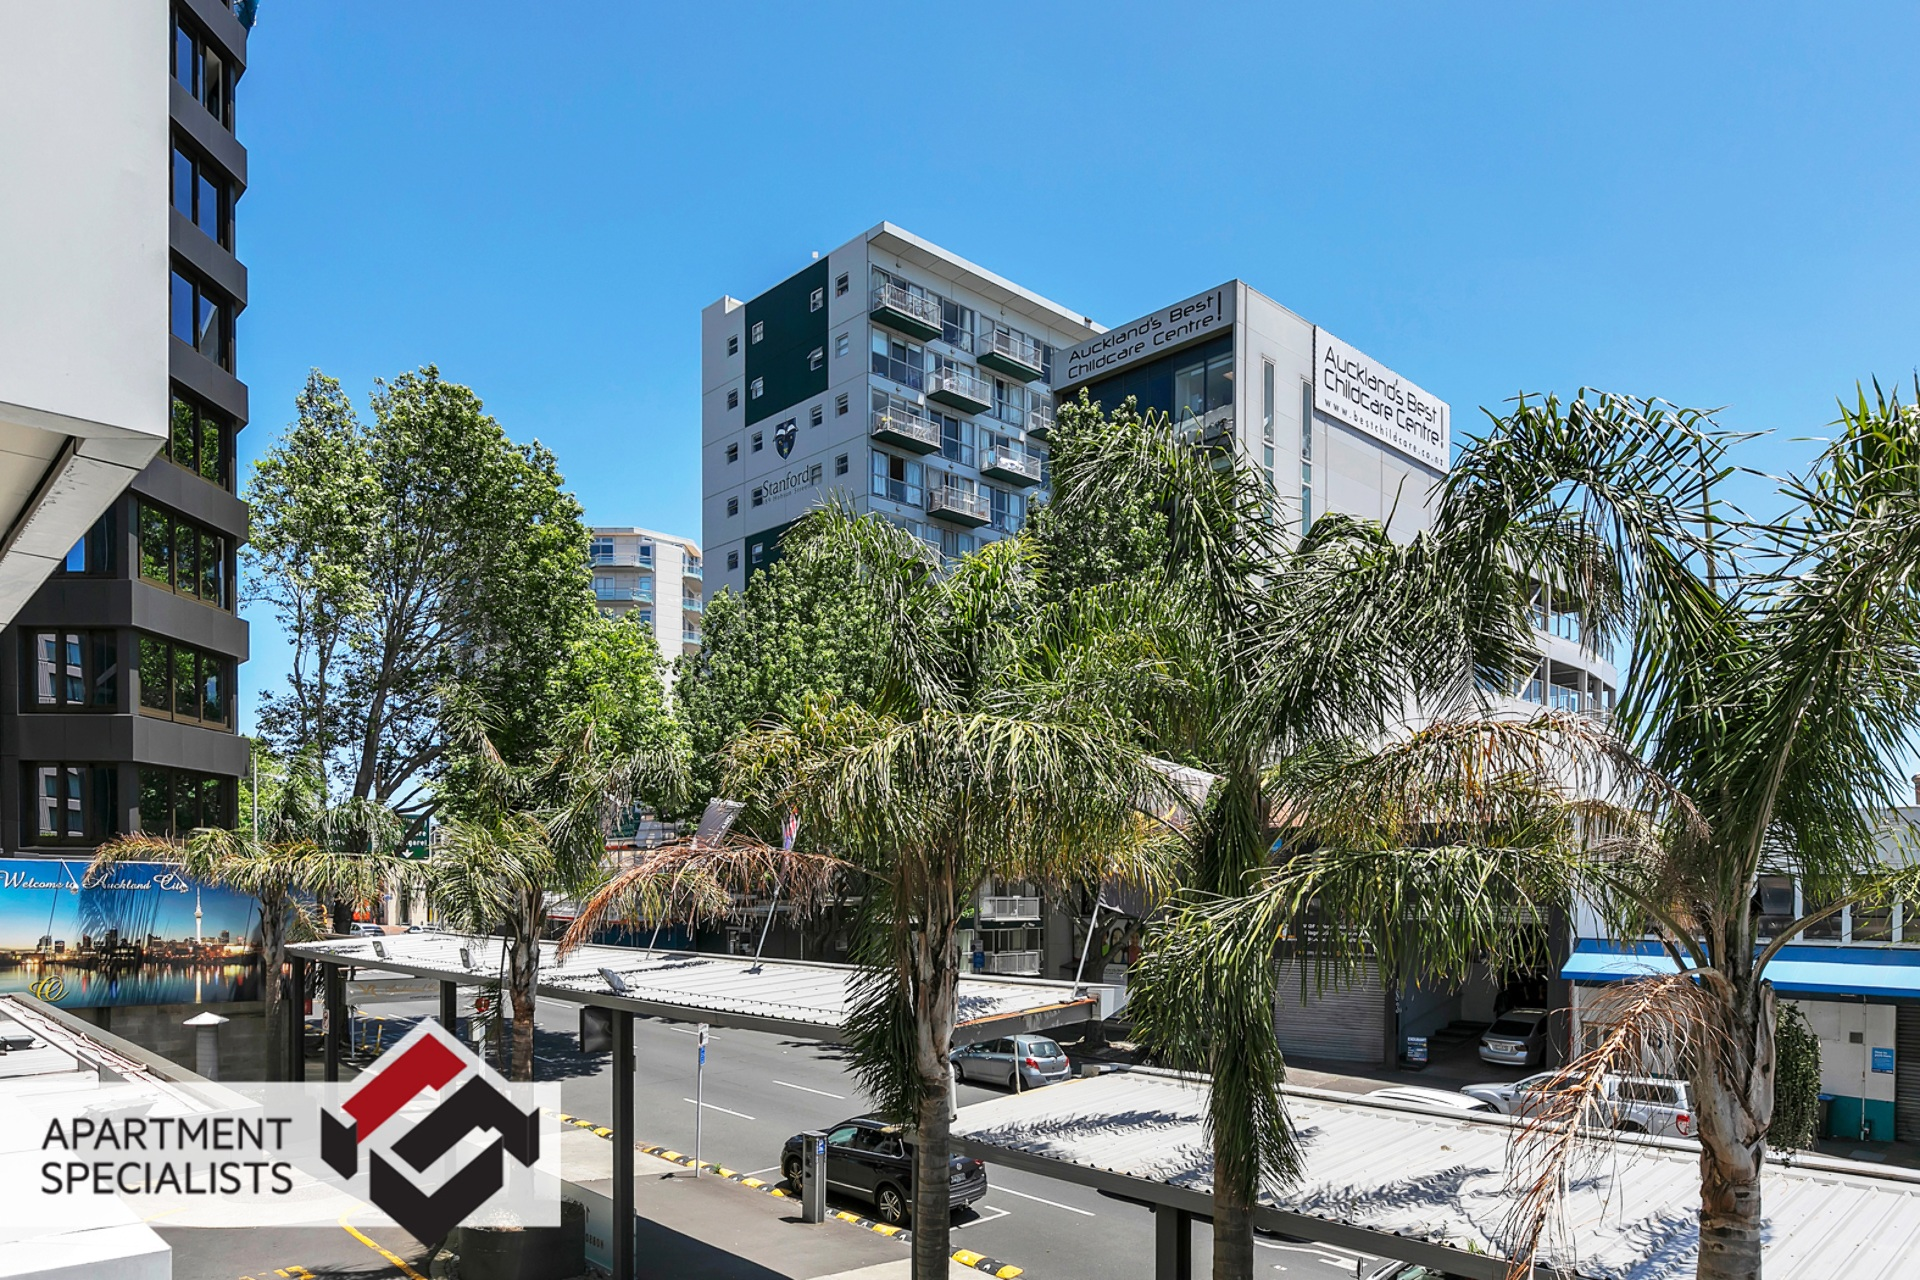 0 | 188 Hobson Street, City Centre | Apartment Specialists